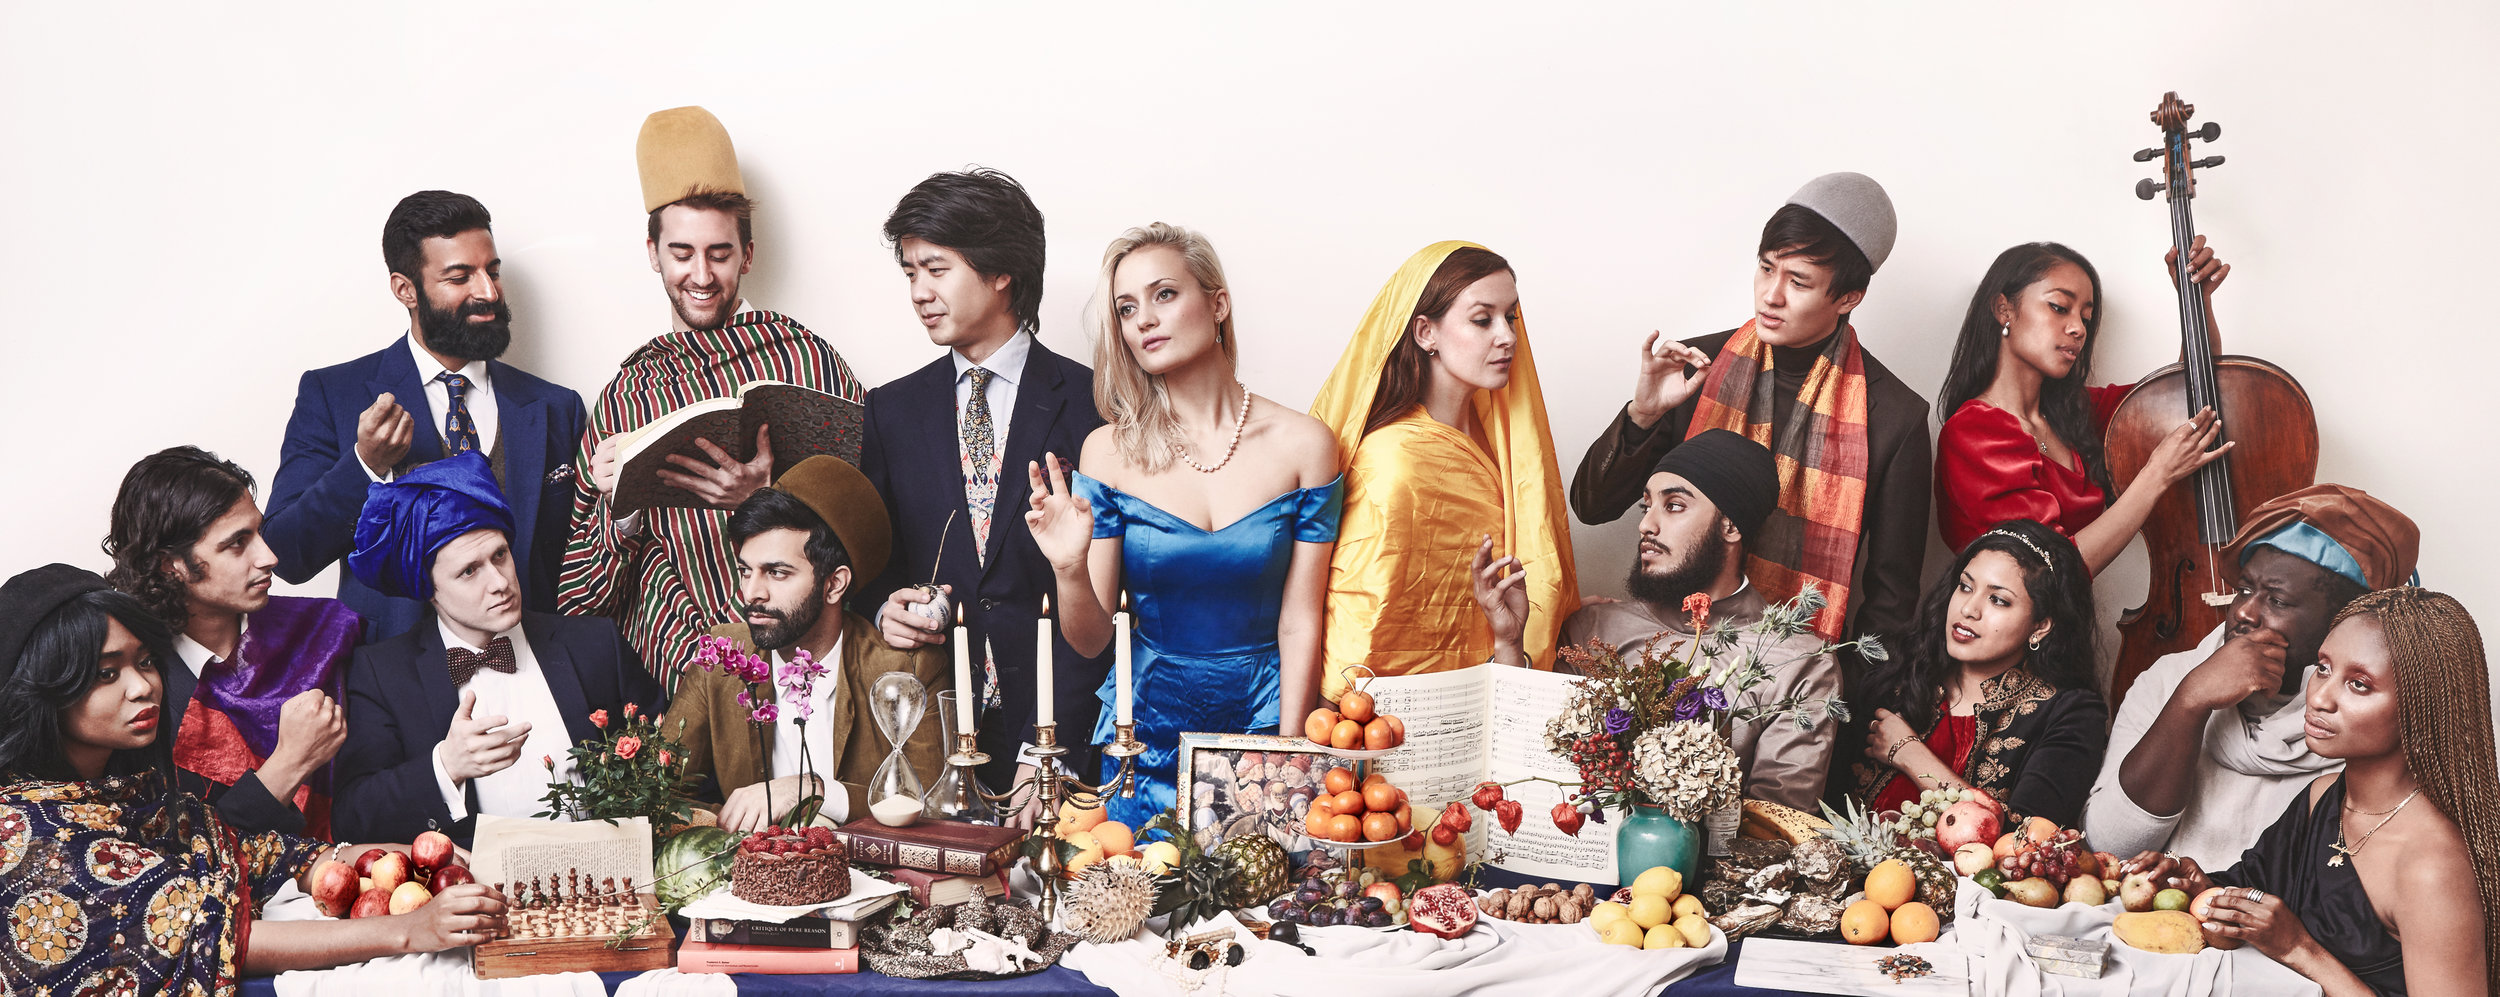 A 17th century inspired photoshoot of our salon community